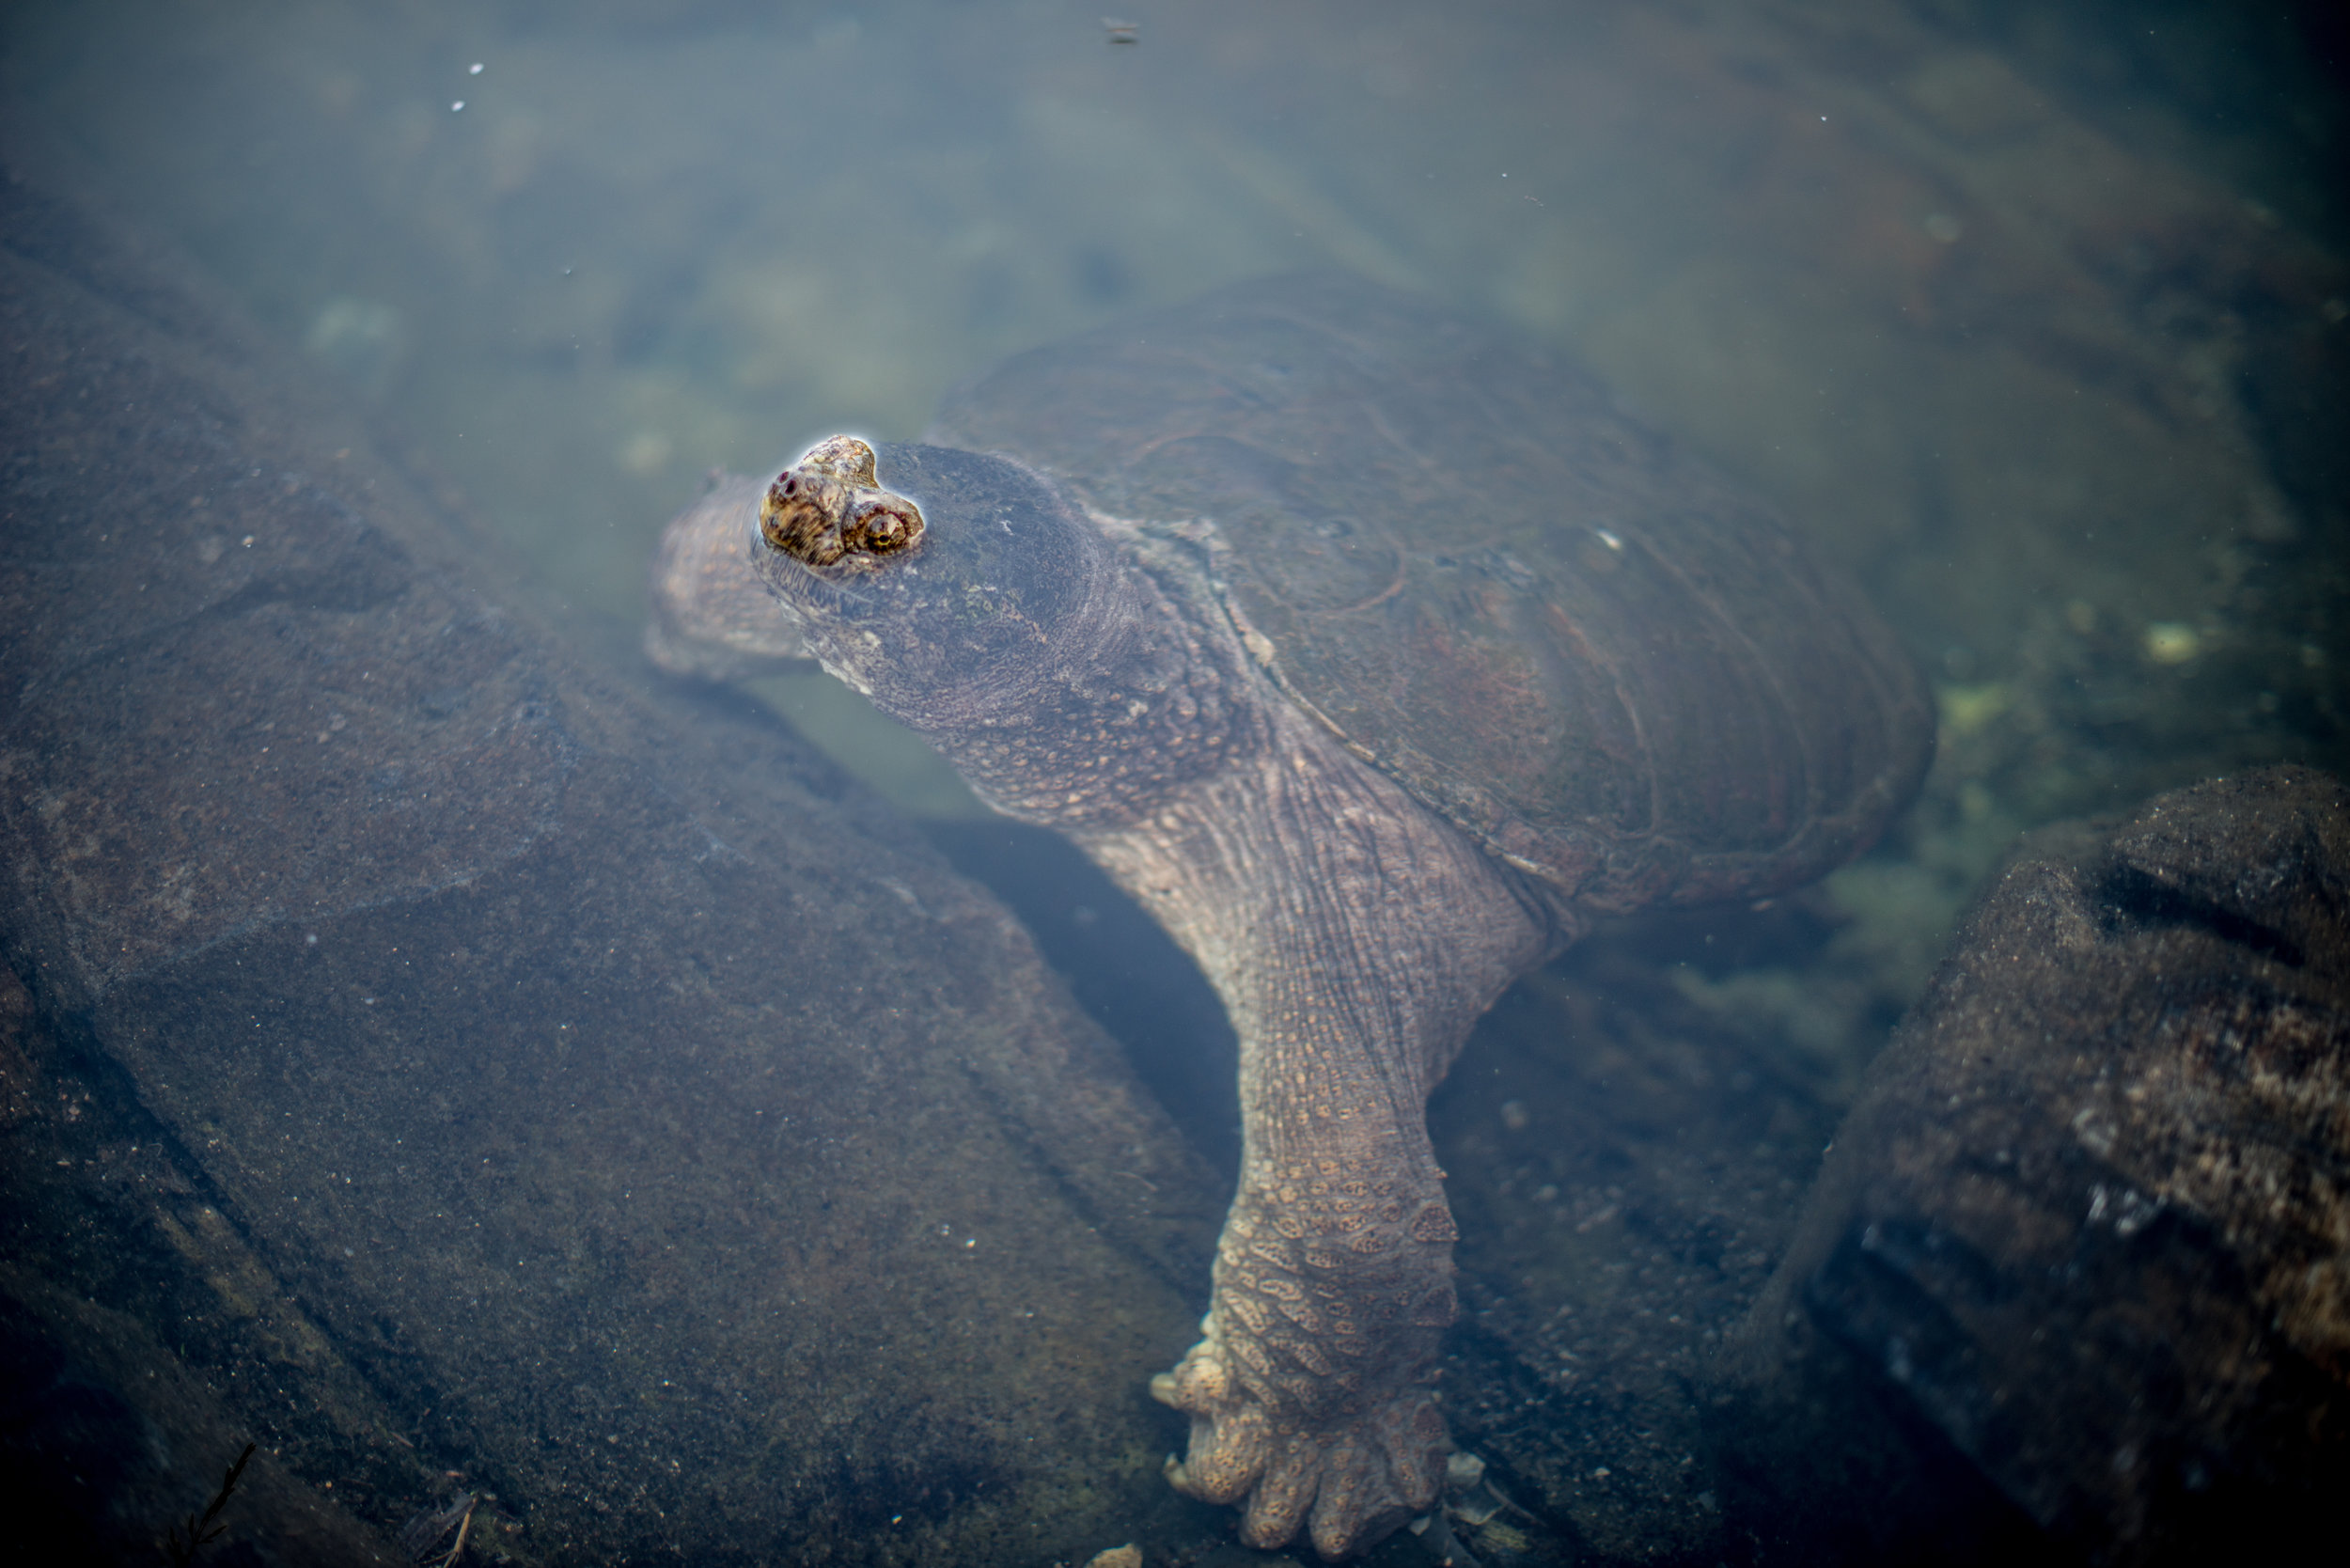 Our Friend Sam, The Snapping Turtle...